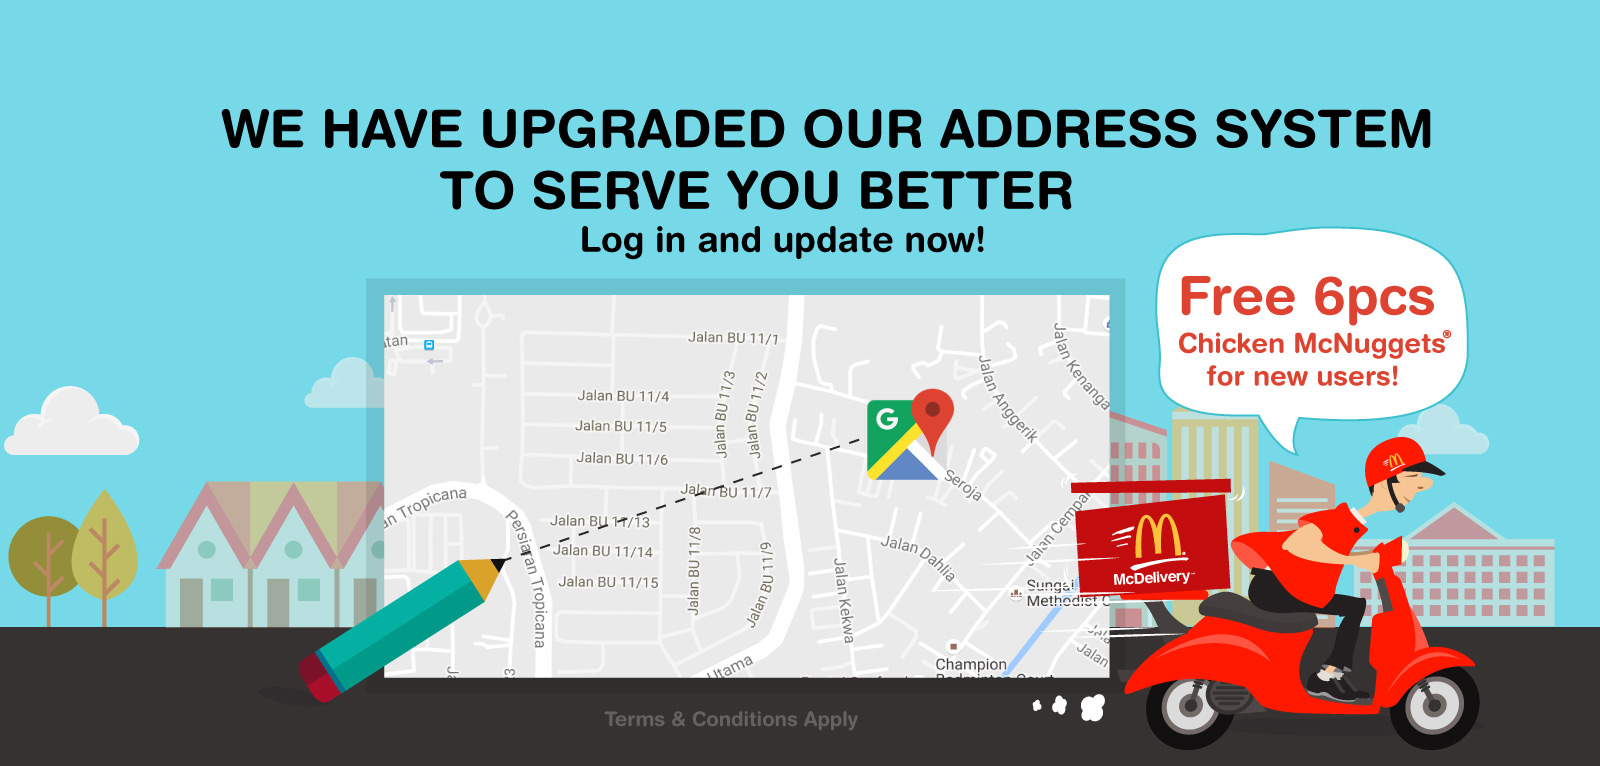 Except as described otherwise, all materials in the McDonald's™ site are made available only to provide information about McDonald's™. McDonald's™ controls and operates this site from its office in Kuala Lumpur, Malaysia and makes no representation that these materials are appropriate or available for use in other locations.